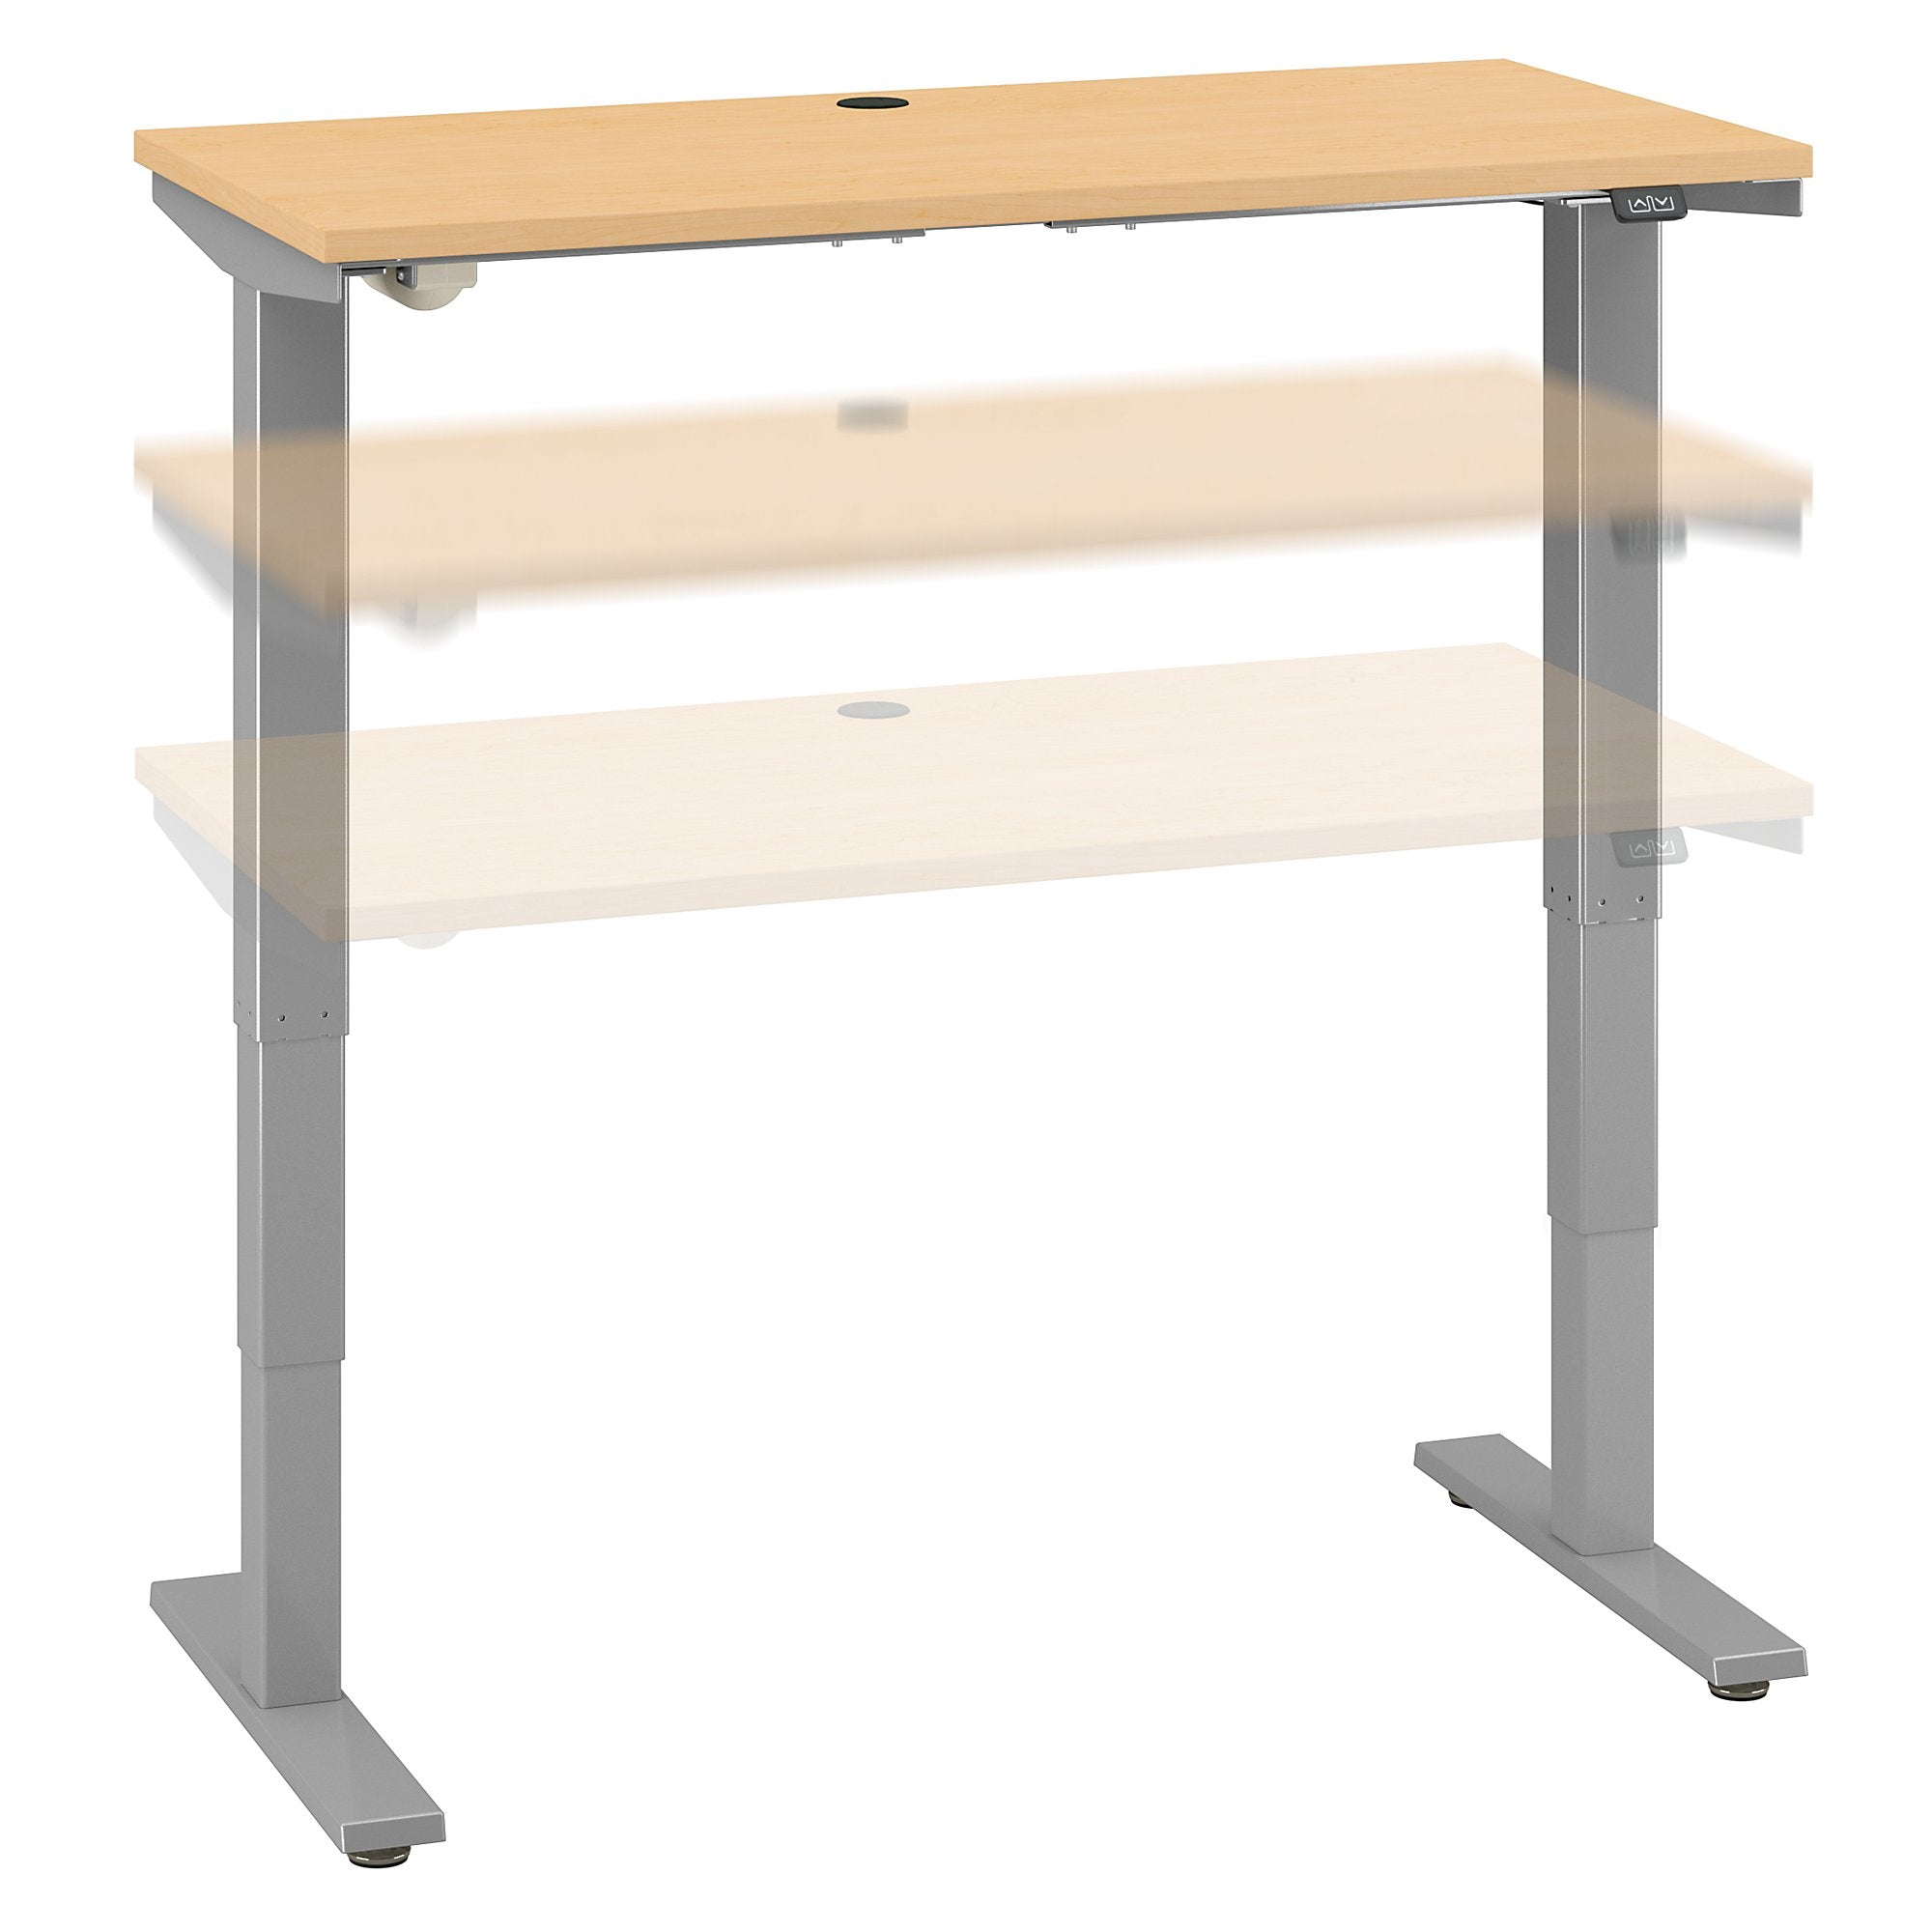 Move 40 Series by 48W x 24D Electric Height Adjustable Standing Desk